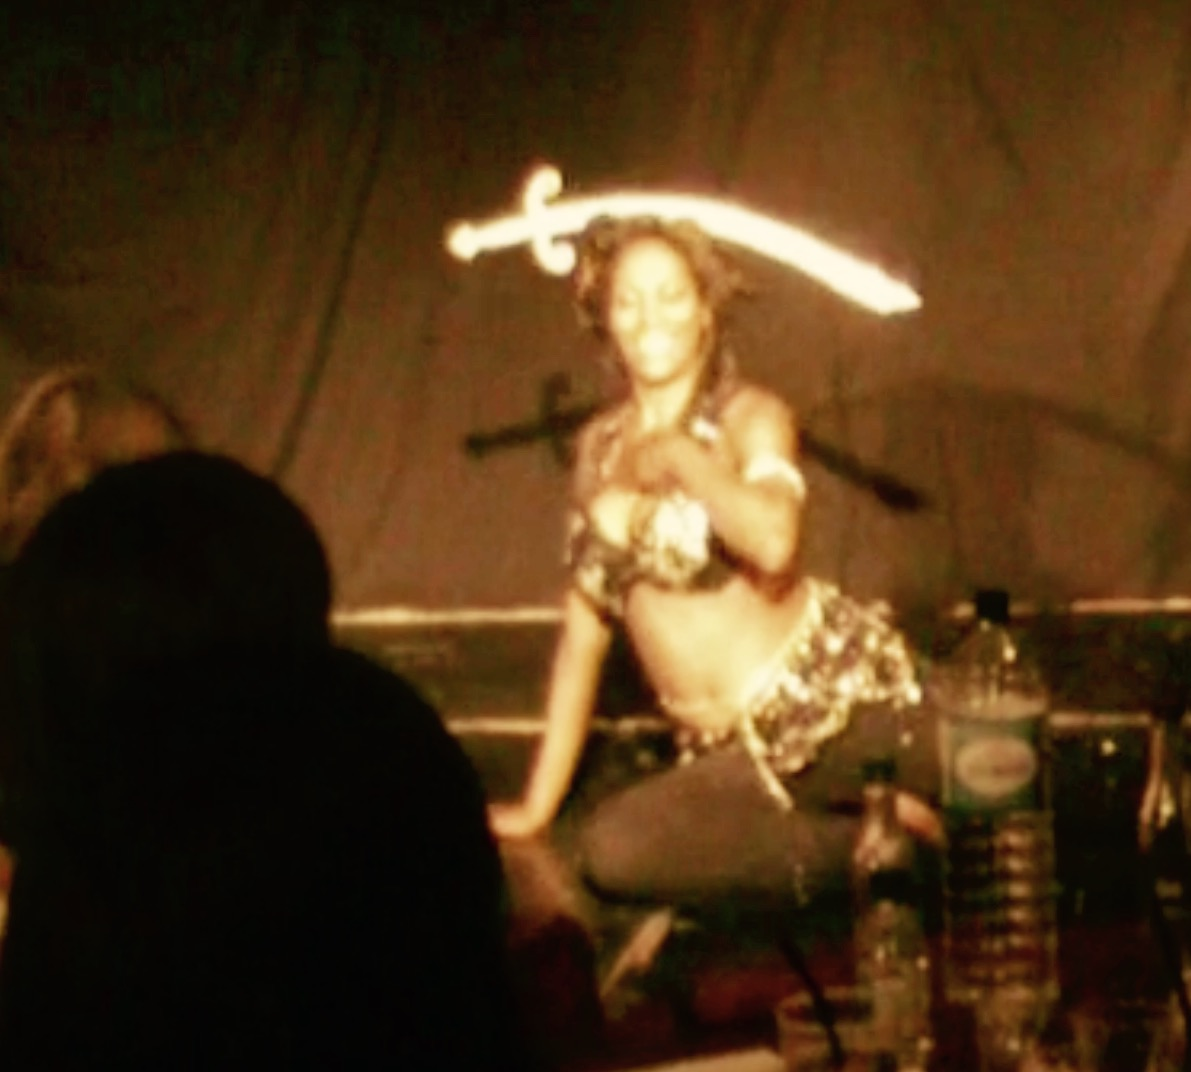 Sword belly dance show London